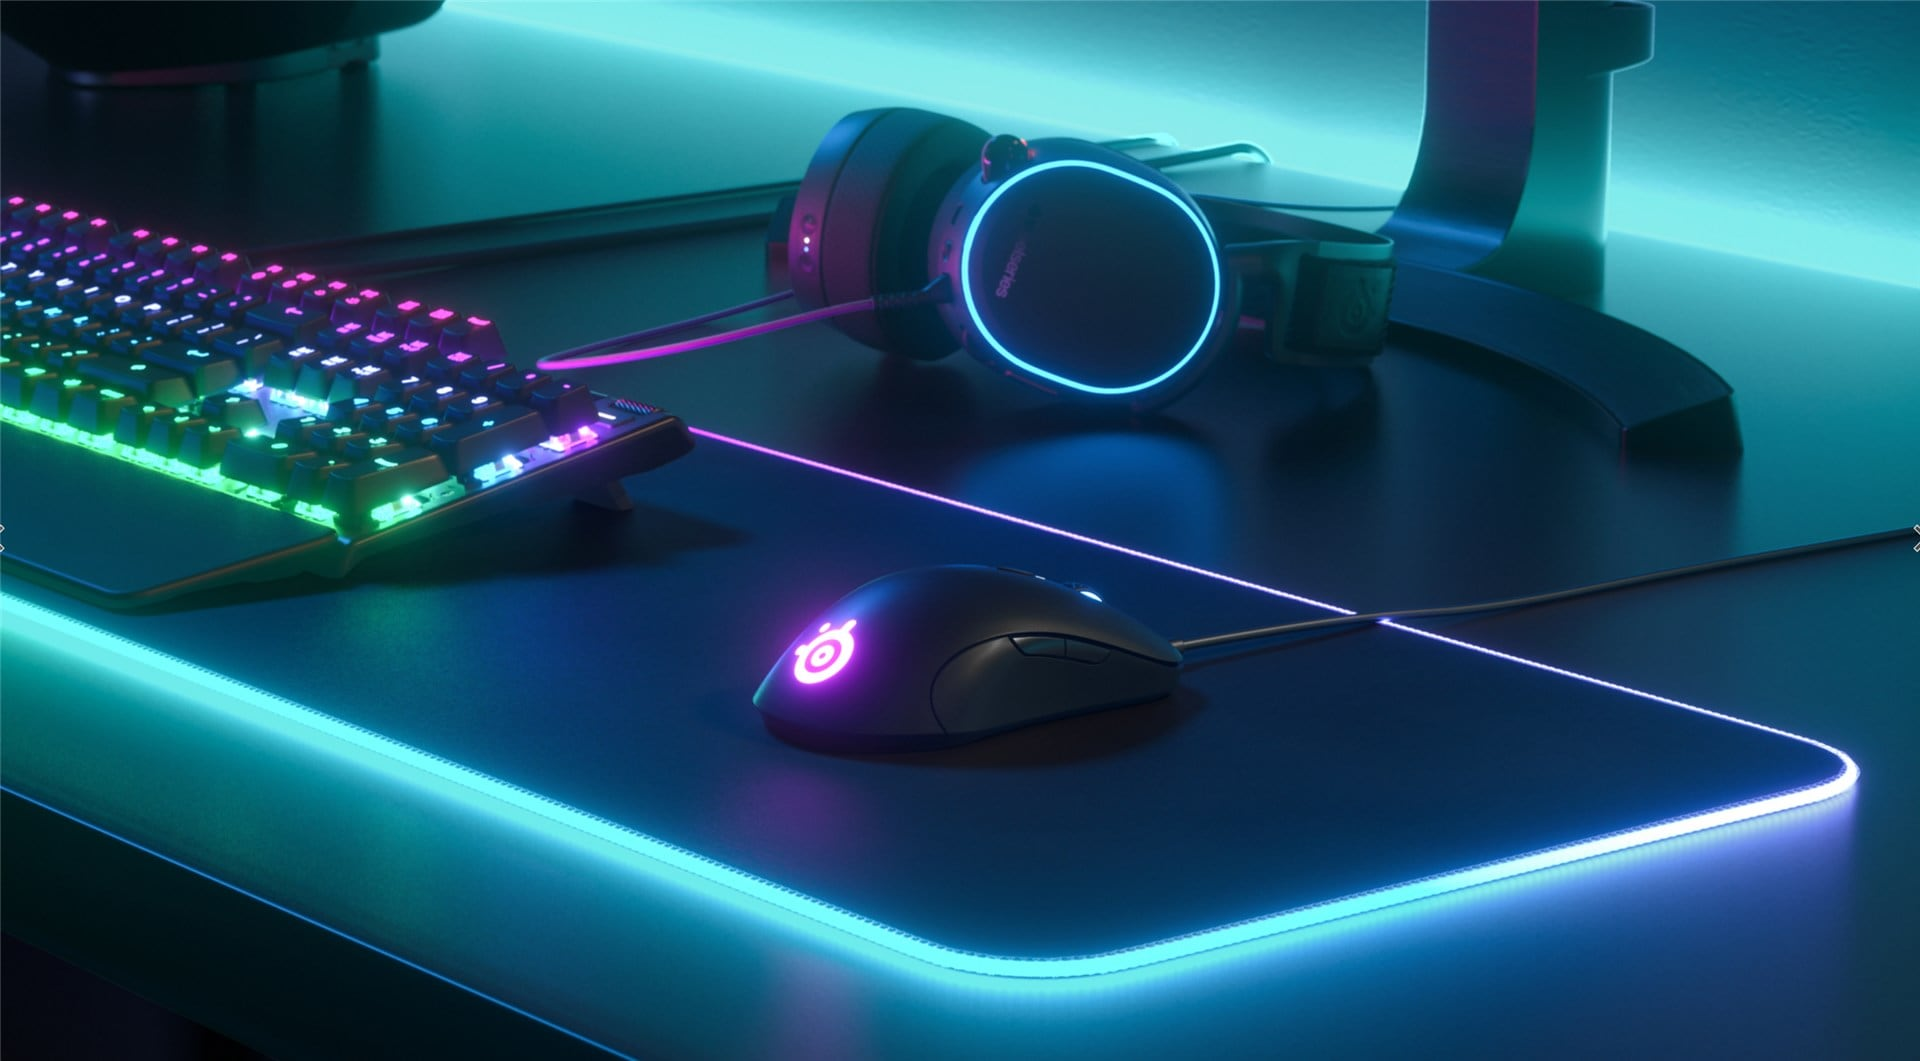 The legendary gaming mouse is back, with a vengeance